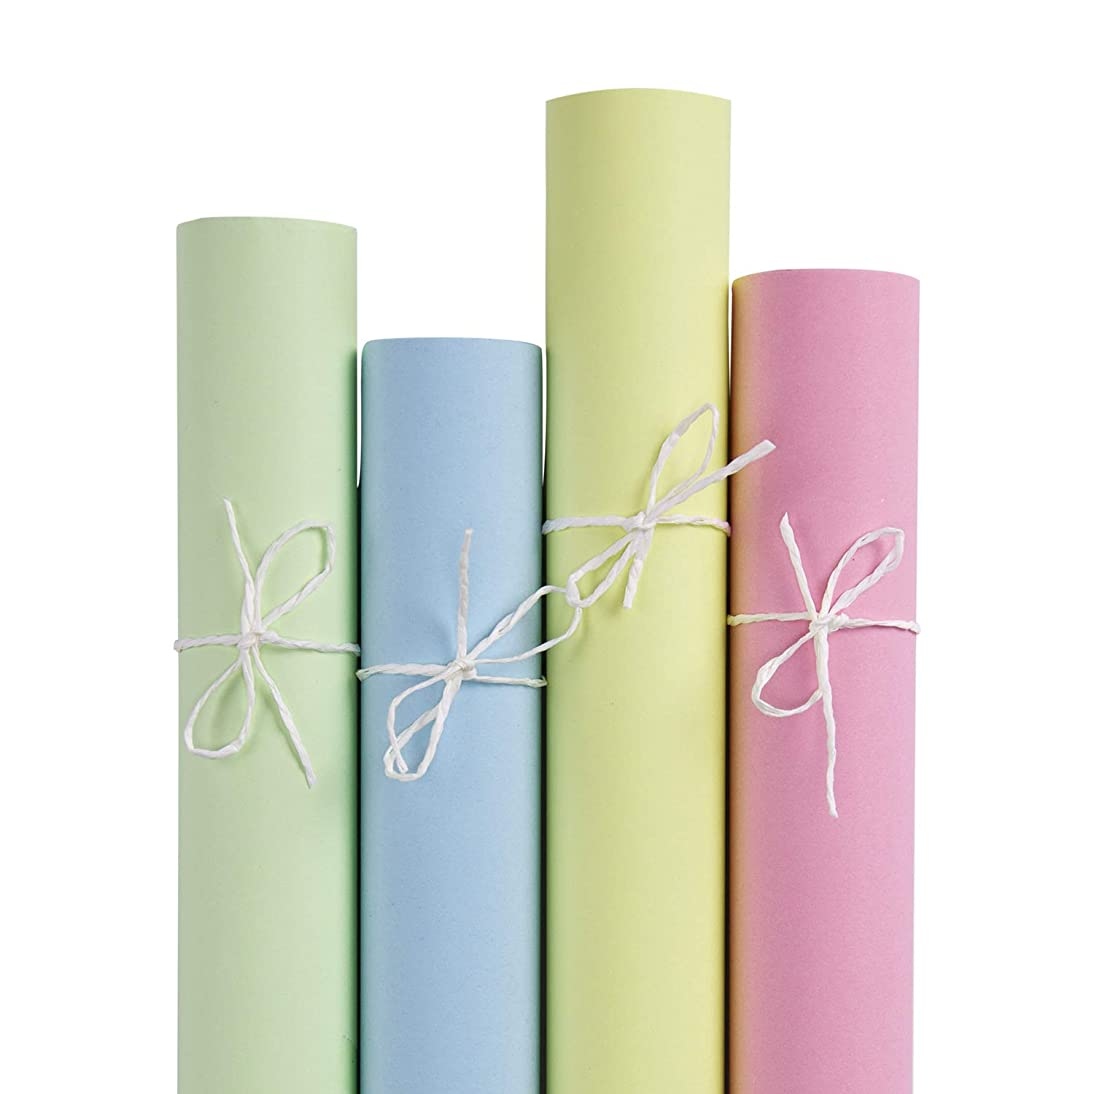 RUSPEPA Kraft Wrapping Paper Set- 4 Roll (Mint,Blue,Pink,Yellow) for for Wedding,Birthday, Shower, Congrats, and Holiday Gifts - 30Inch X 10Feet Per Roll